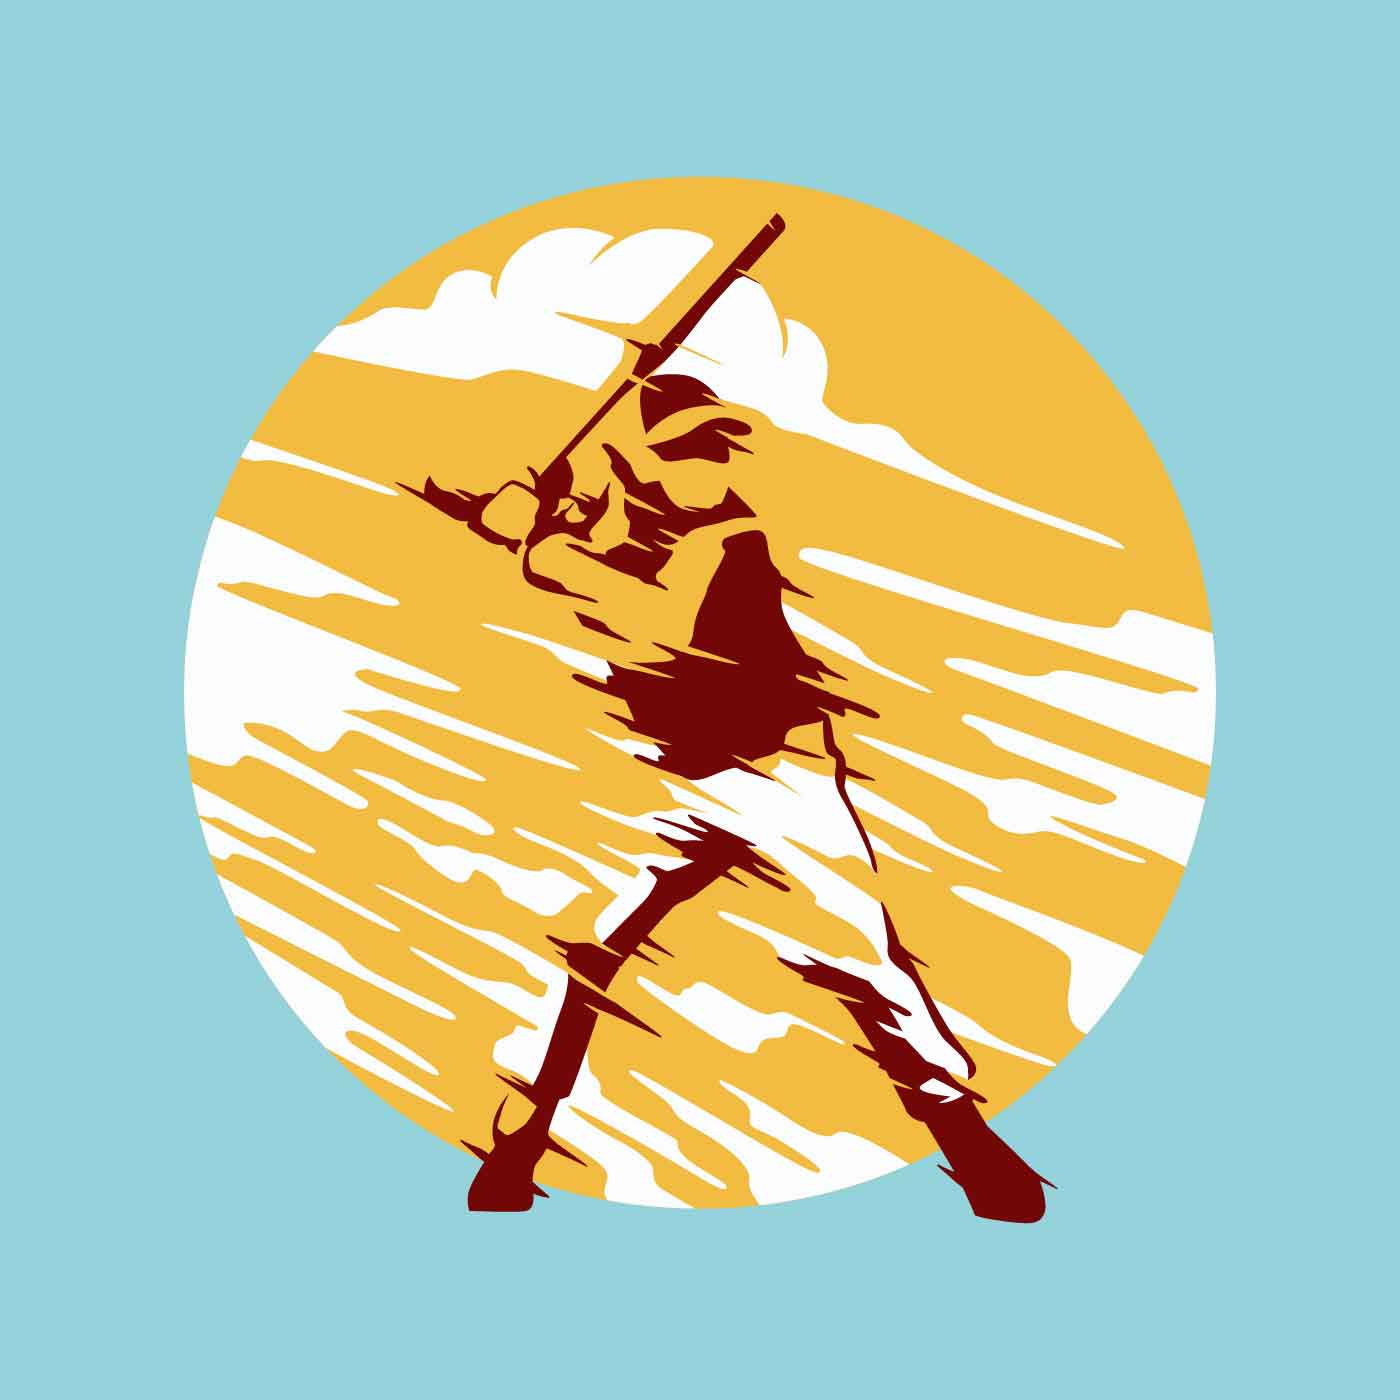 Abstract Baseball Player Vector Download Free Vector Art